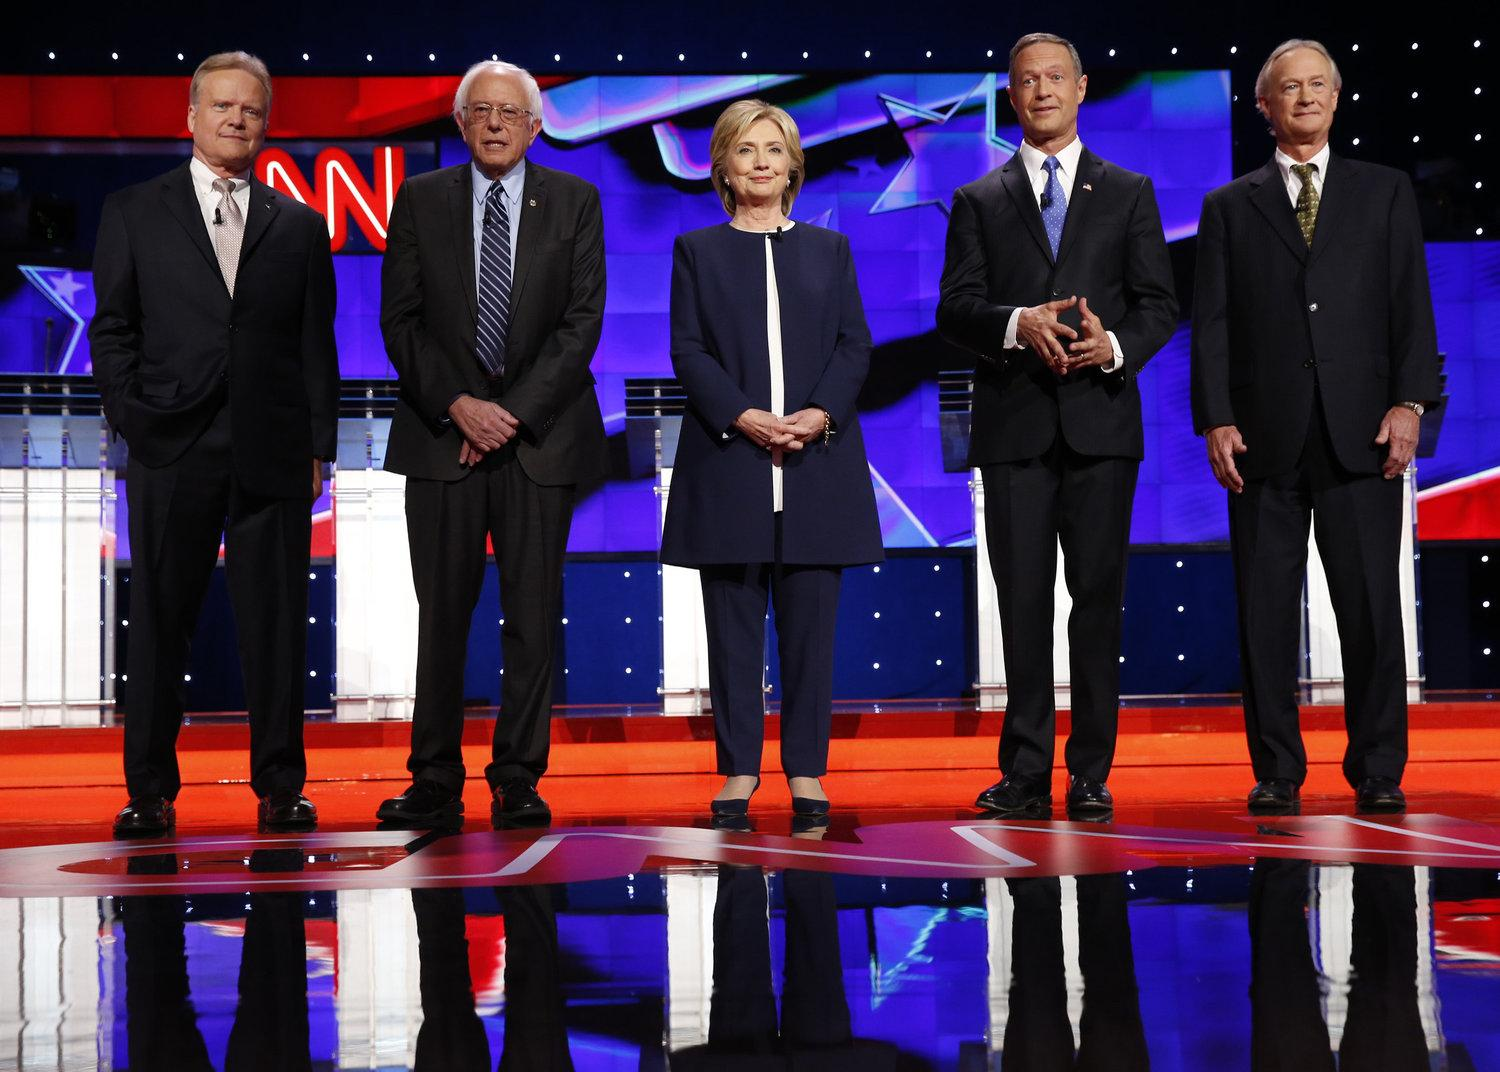 From left, Democratic presidential candidates Jim Webb, Bernie Sanders, Hillary Rodham Clinton, Martin O'Malley and Lincoln Chafee on the debate stage on Tuesday, Oct. 13, 2015, in Las Vegas. (Josh Haner/NYT/Pool via Zuma Press/TNS)